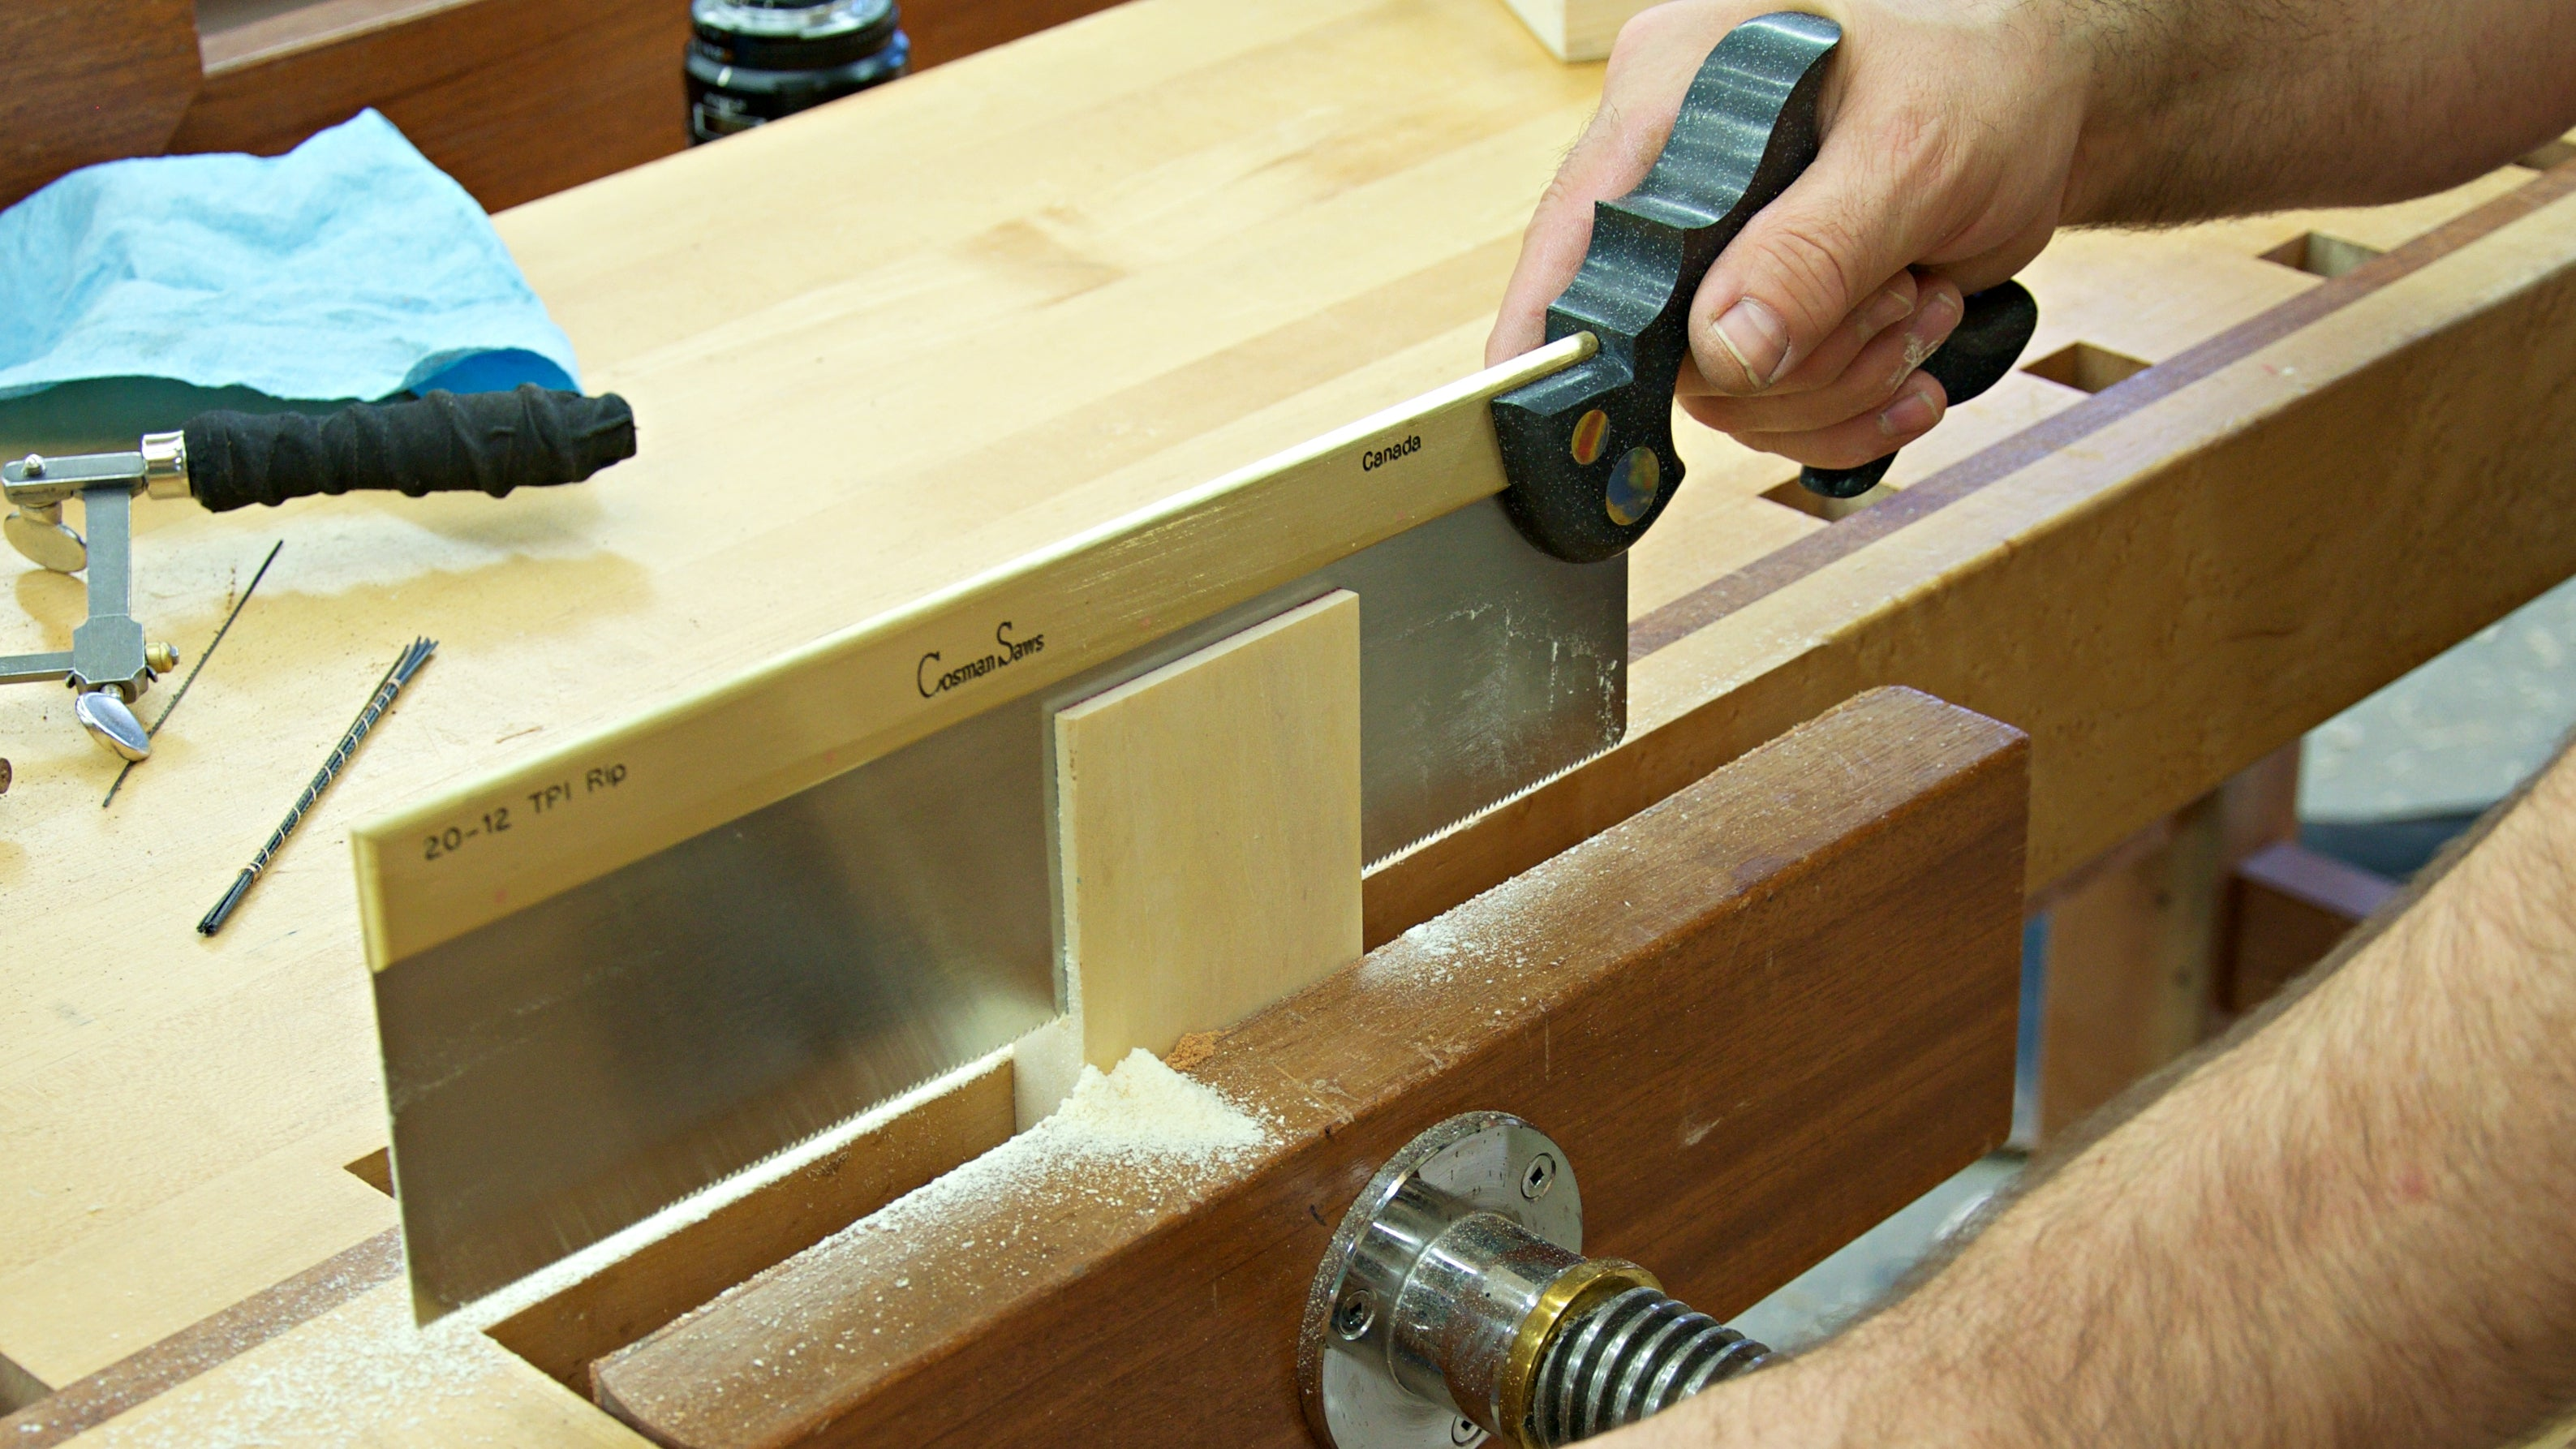 Rob Cosman's Professional Medium Tenon Saw